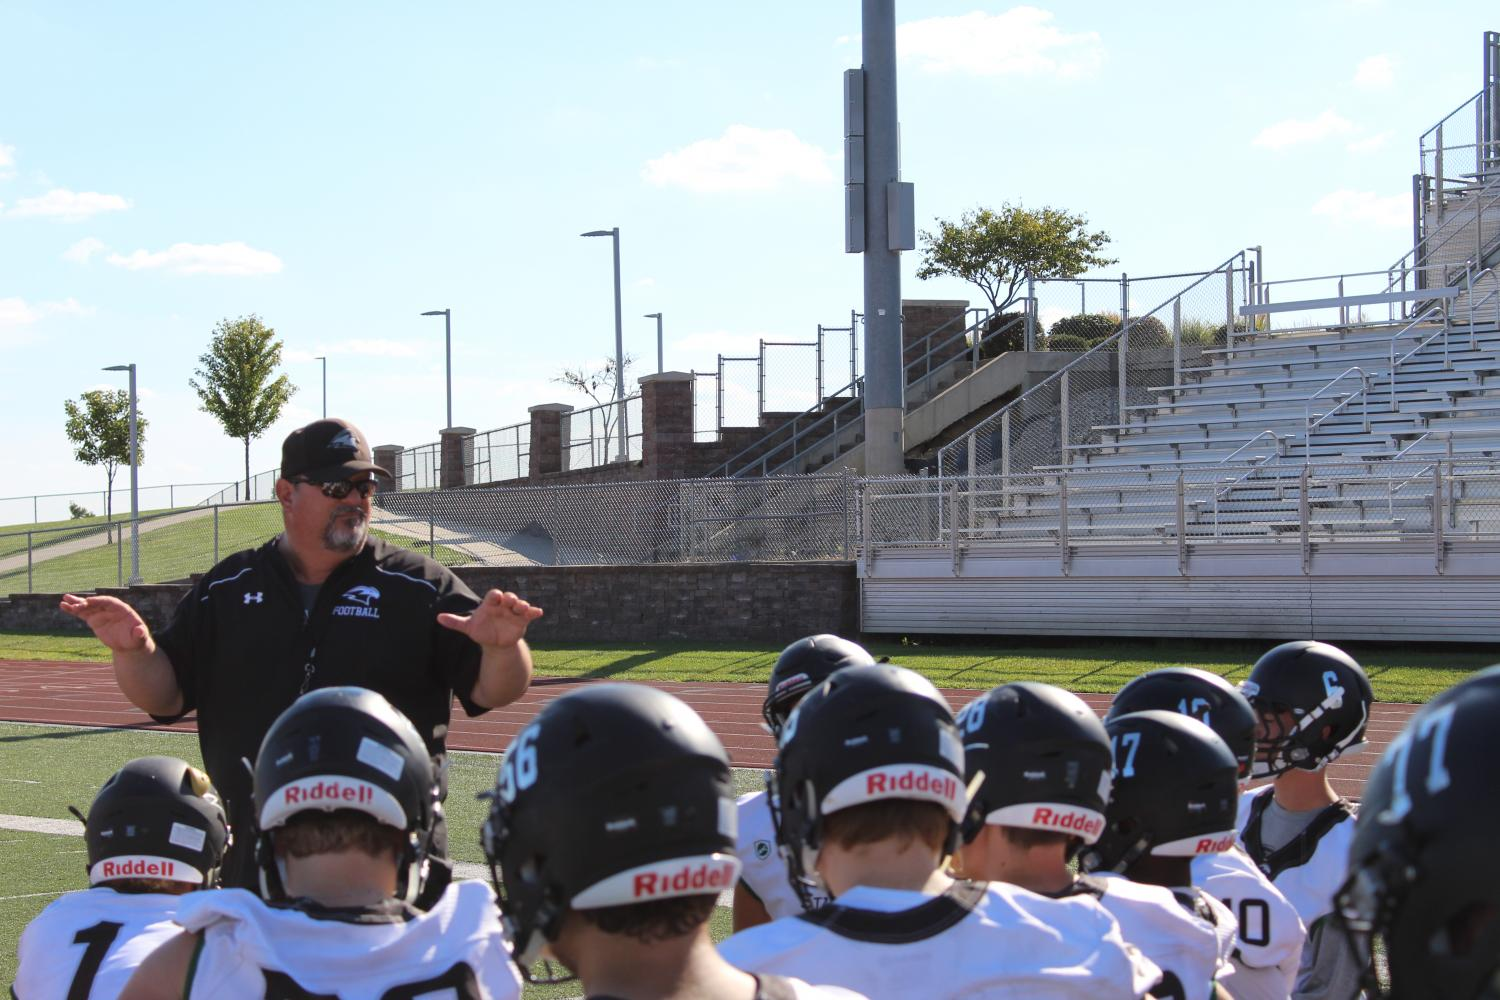 """On Sept. 28, head coach Phil Lite gives the team a post-practice talk. It was the day before a game, and the players had just gotten done with walk throughs. """"He's a good speaker, and he just gets us ready to play. He's a coach on the field but like a friend off the field,"""" said varsity quarterback senior John Raybourn. Photo by Leidy Venegas"""